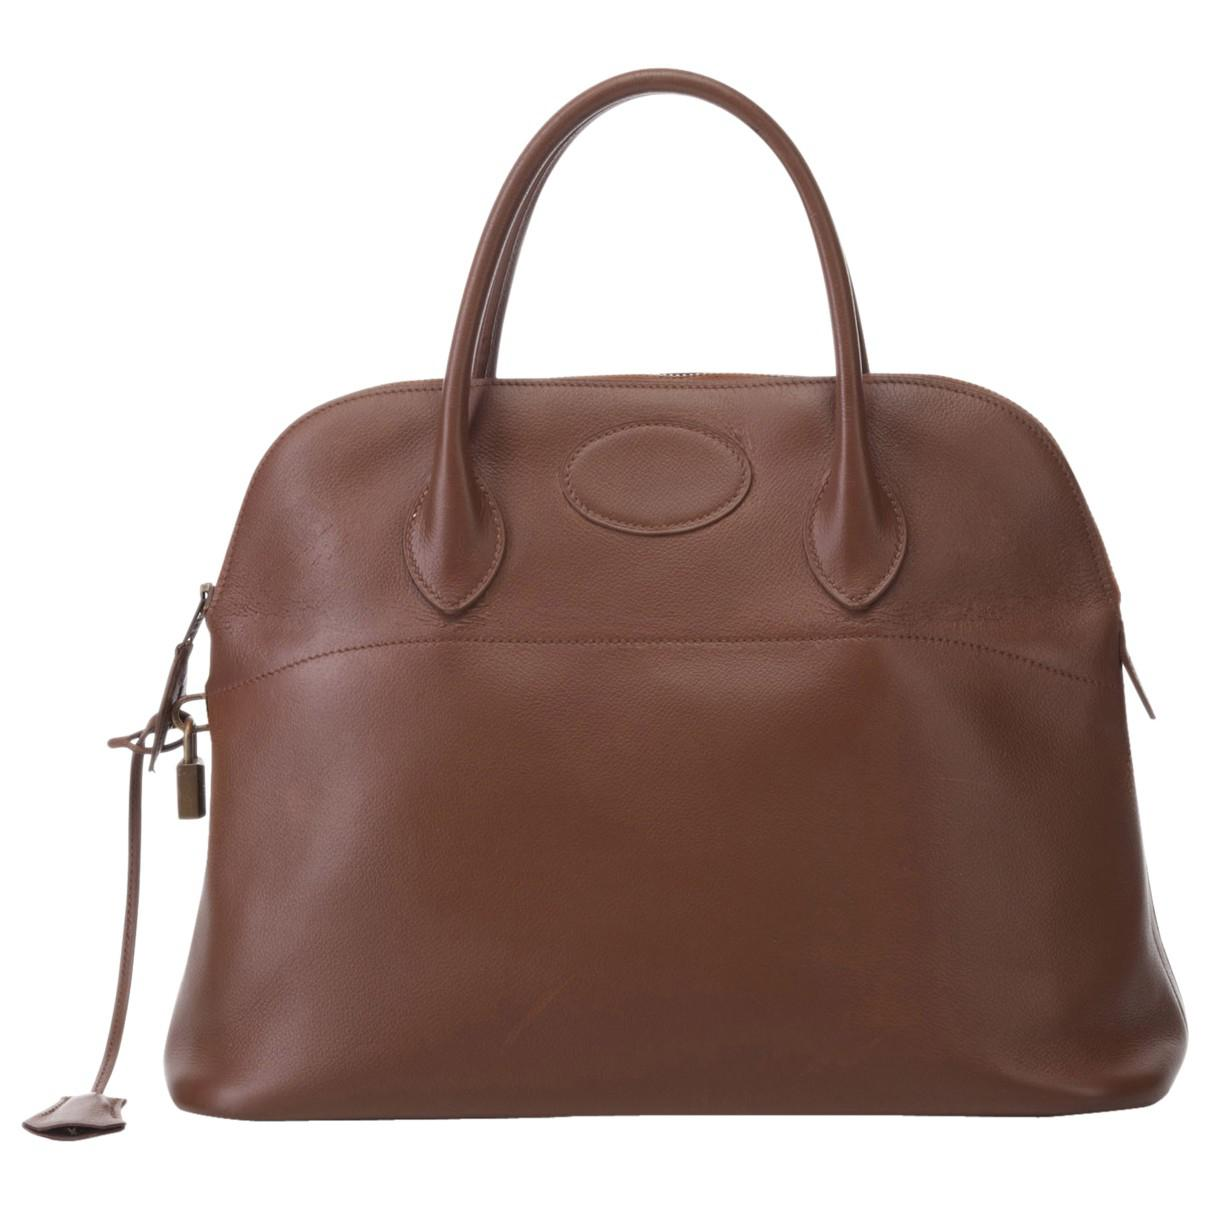 df6a56e8f02e Lyst - Hermès Pre-owned Vintage Bolide Brown Leather Handbags in Brown